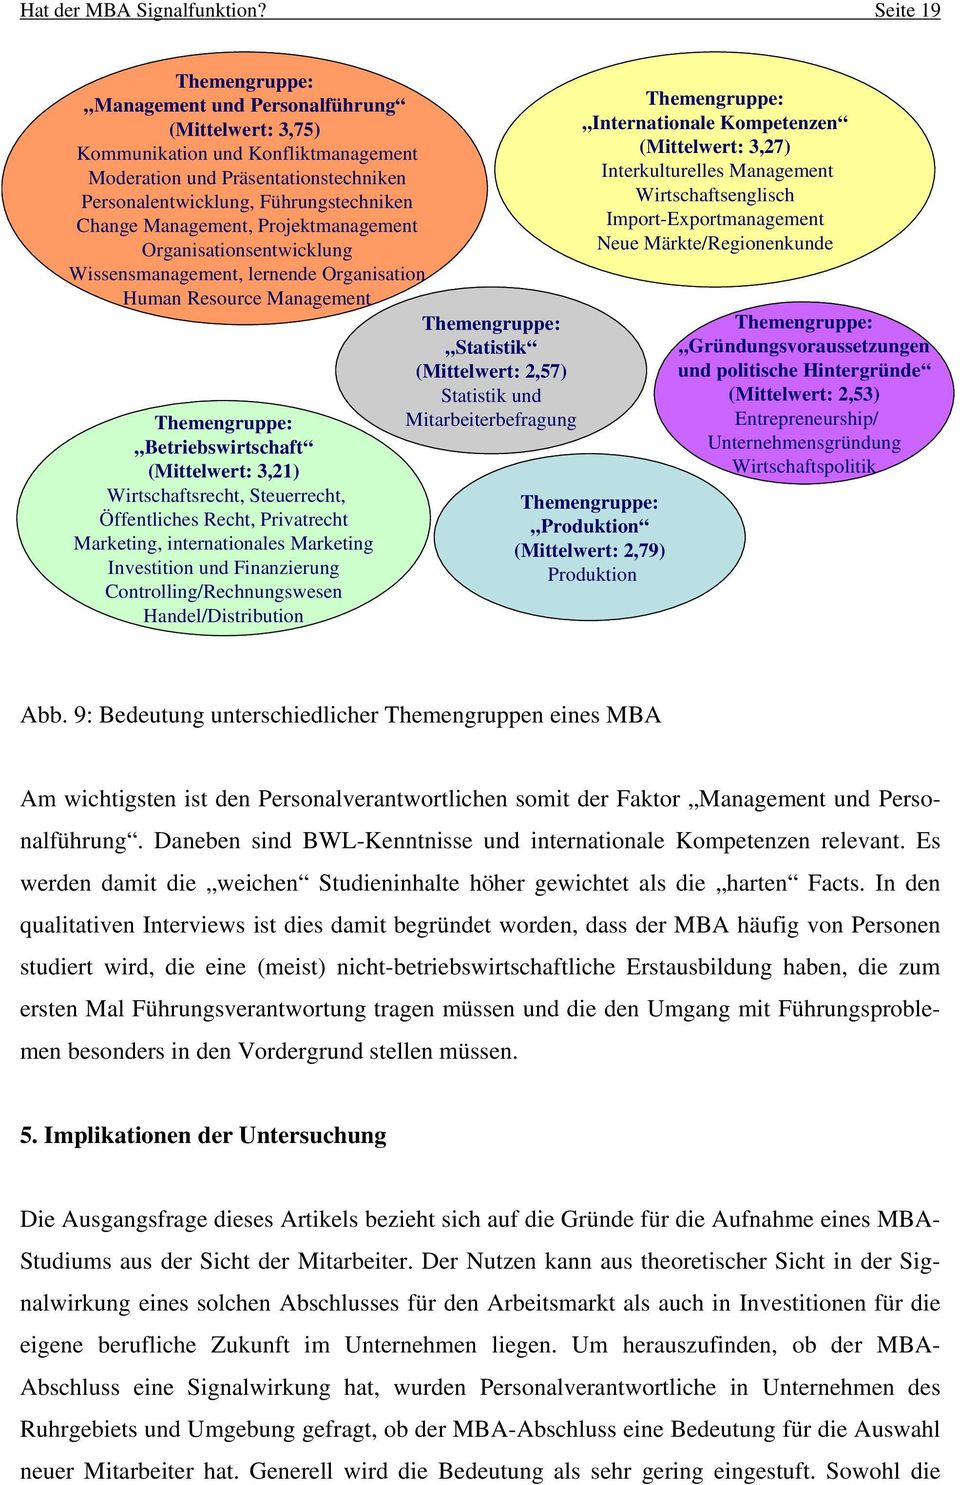 Präsentationstechniken Interkulturelles Management Personalentwicklung, Führungstechniken Wirtschaftsenglisch Change Management, Projektmanagement Import-Exportmanagement Organisationsentwicklung